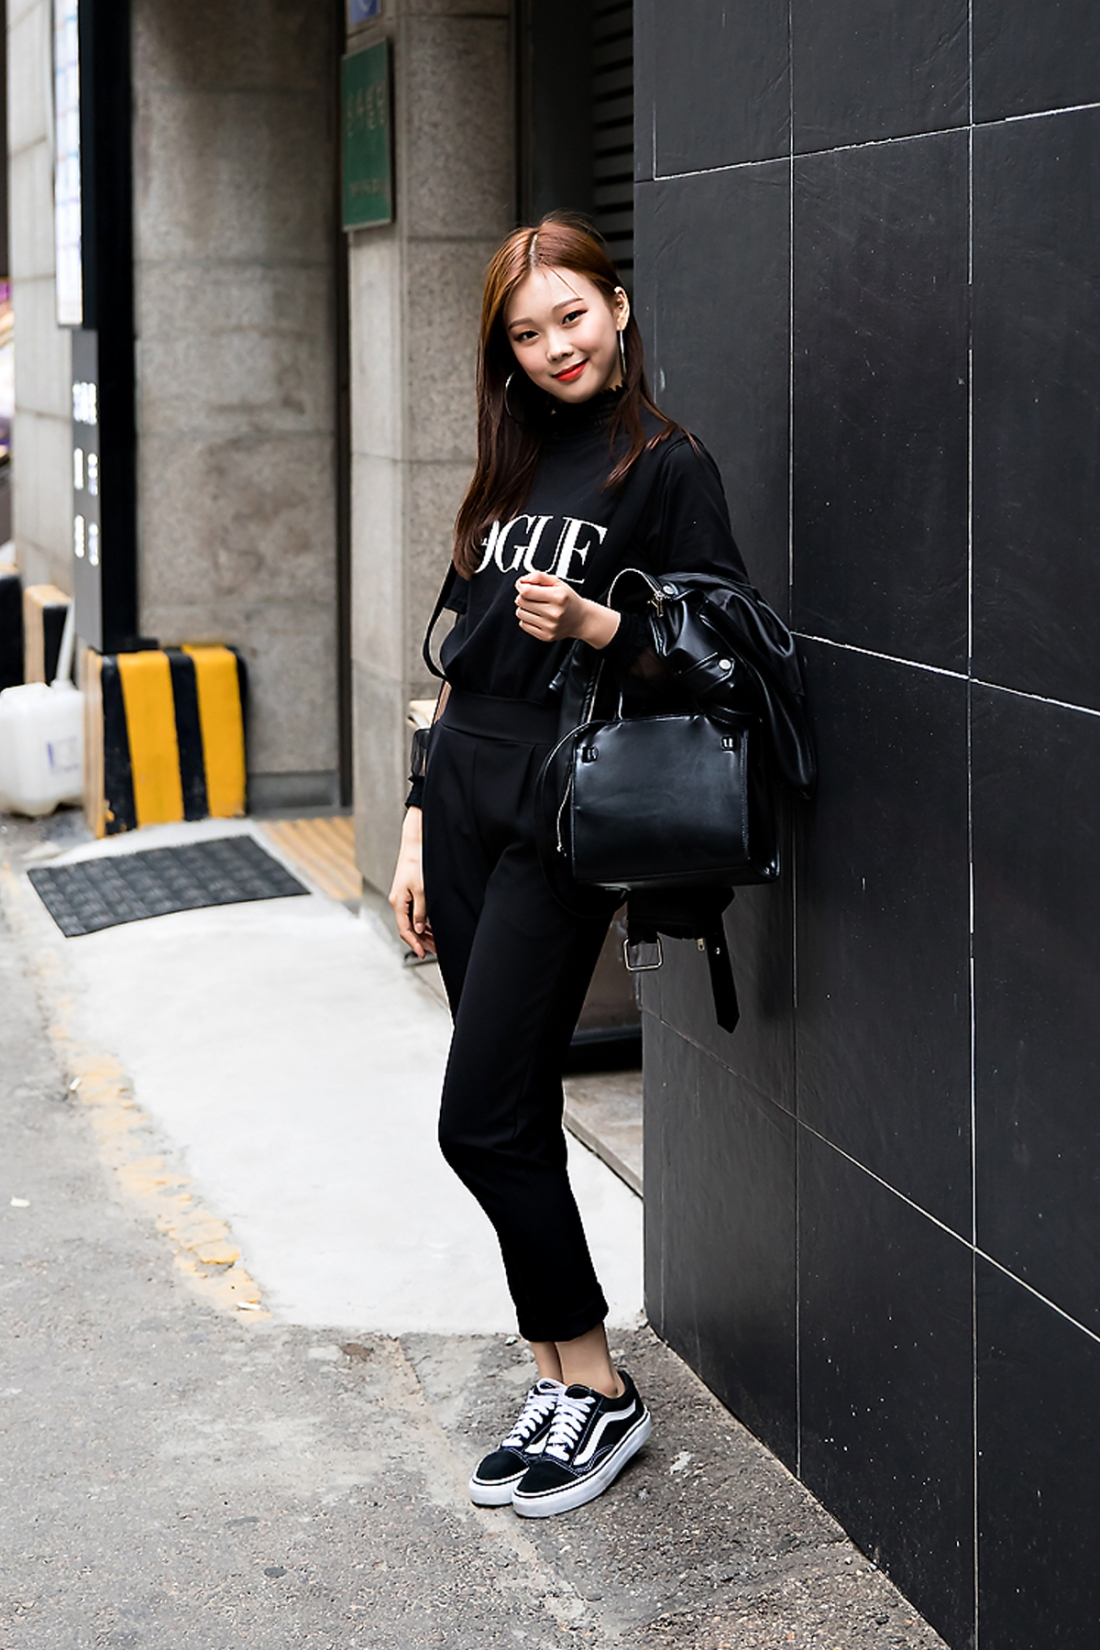 Lee Jieun, Street Fashion 2017 in Seoul.jpg